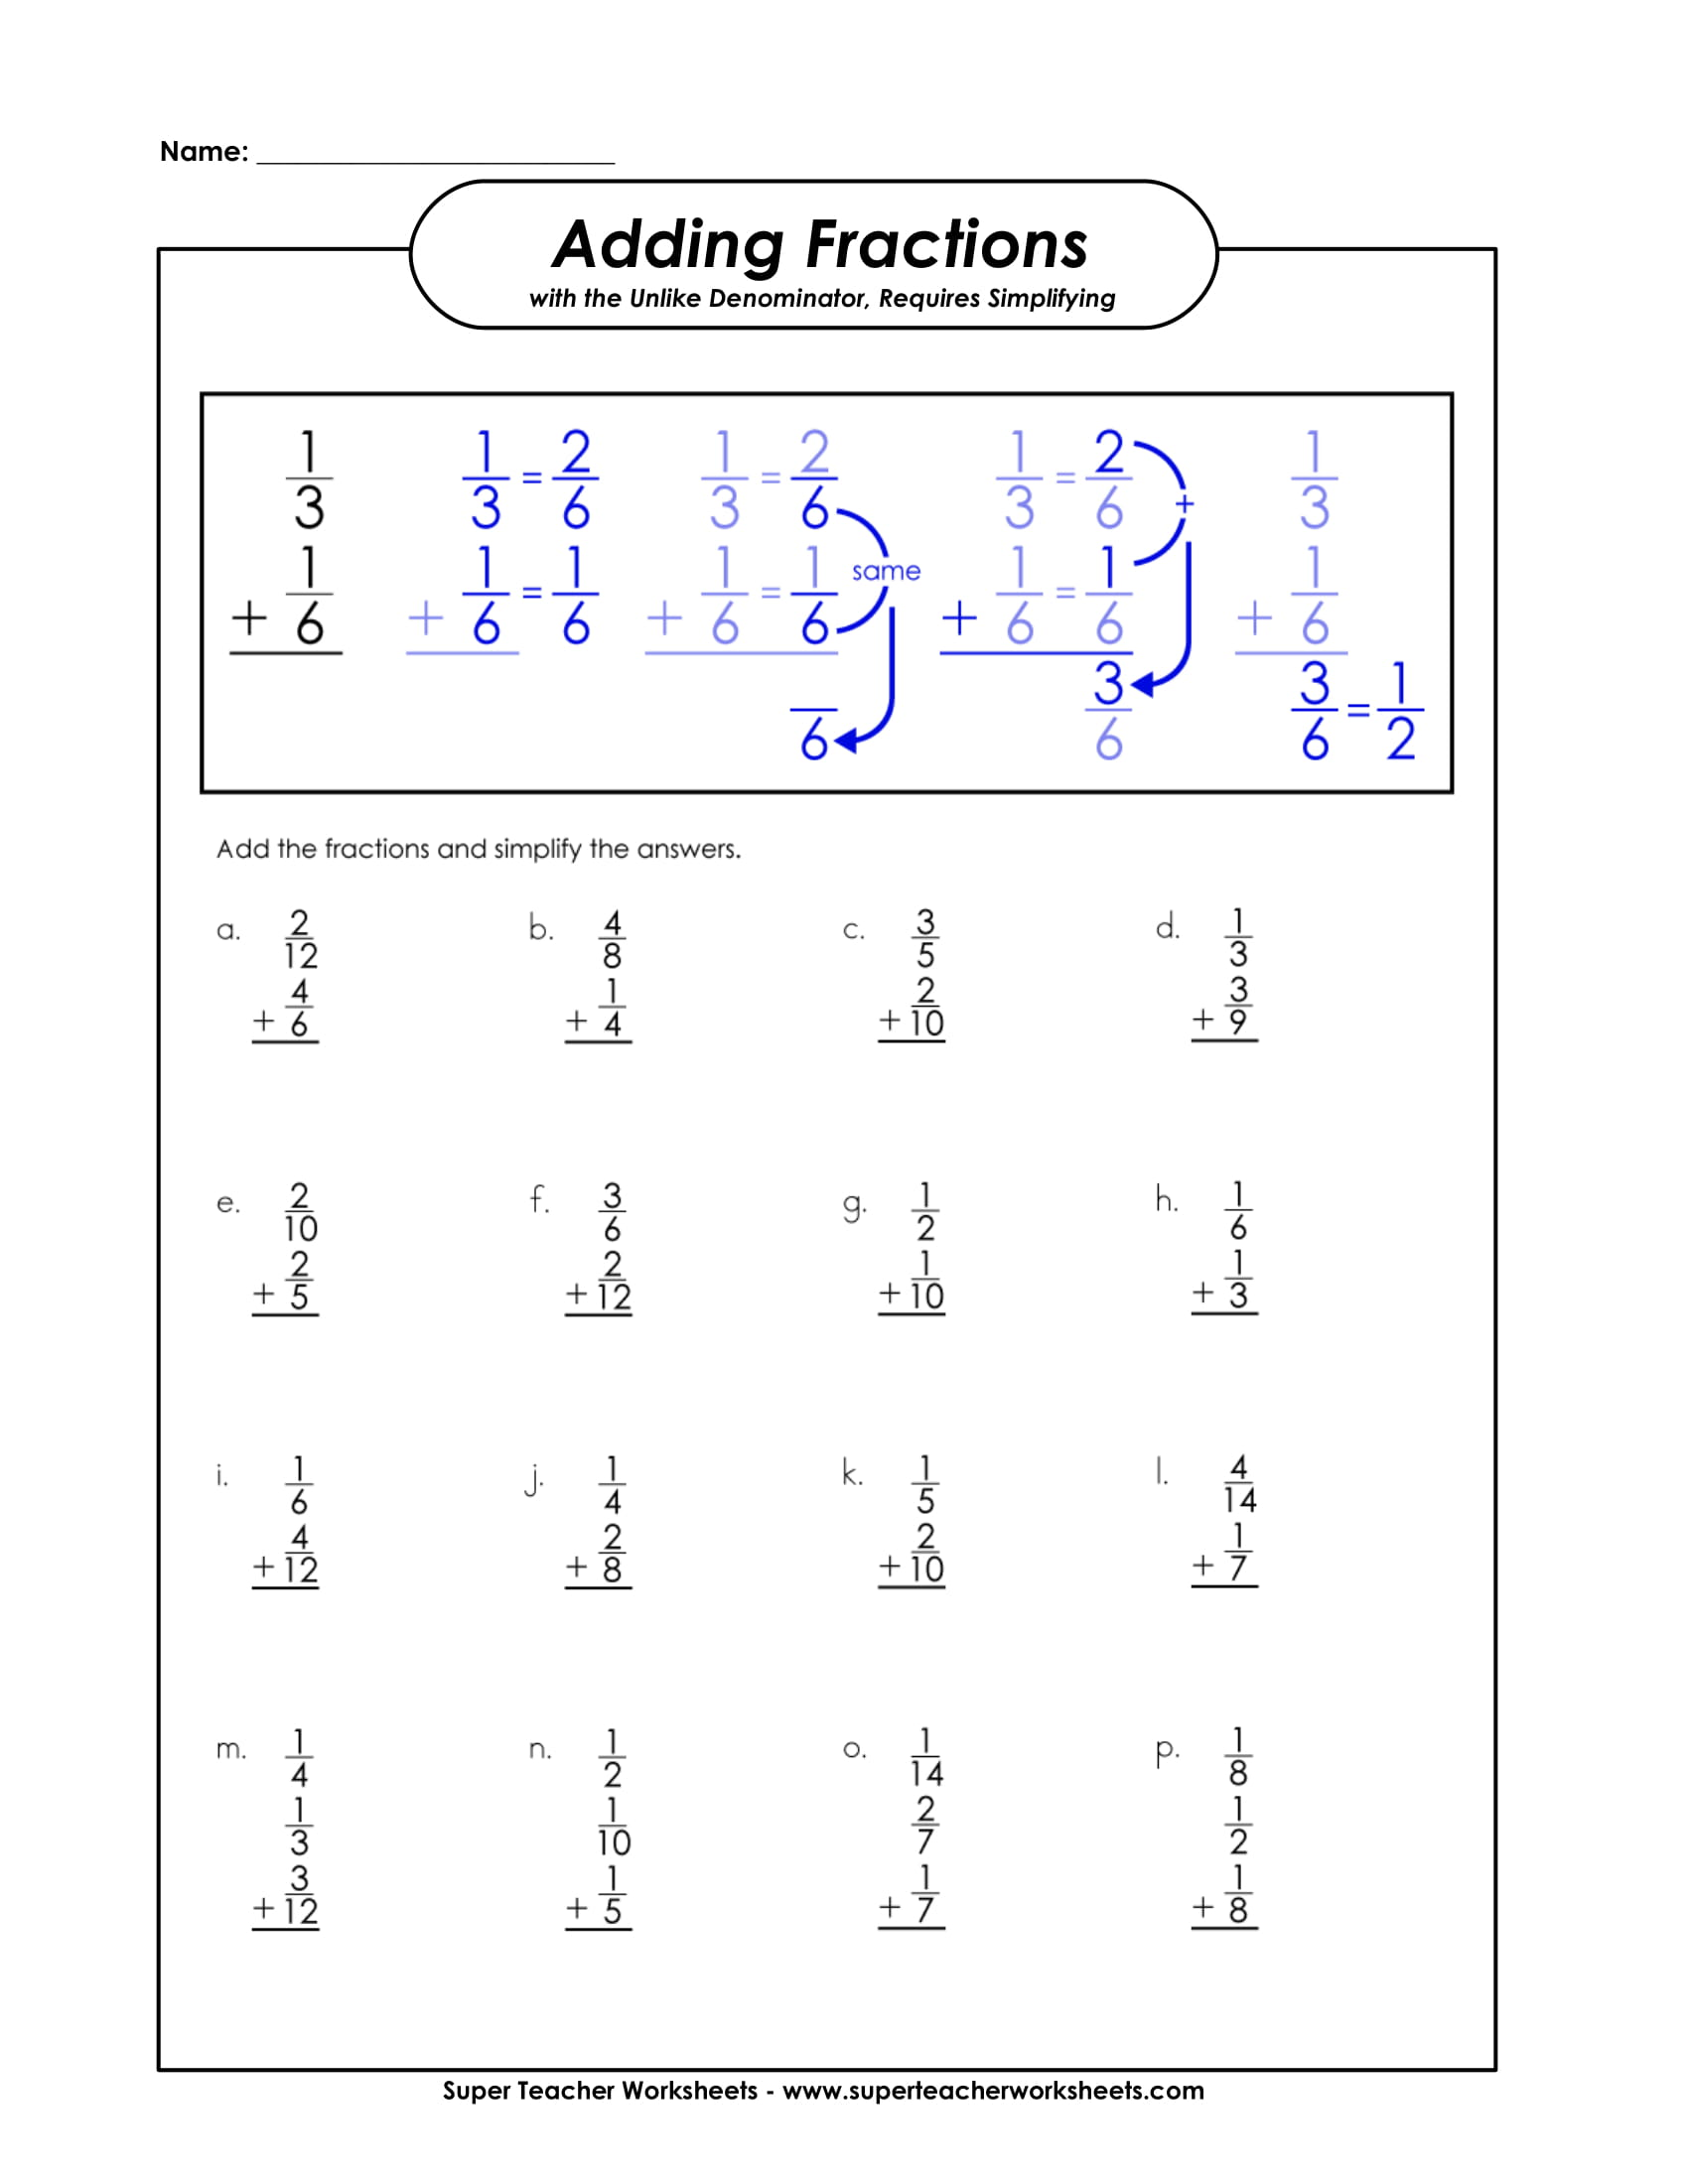 Super Teacher Worksheets Fractions Of Groups - SAOWEN